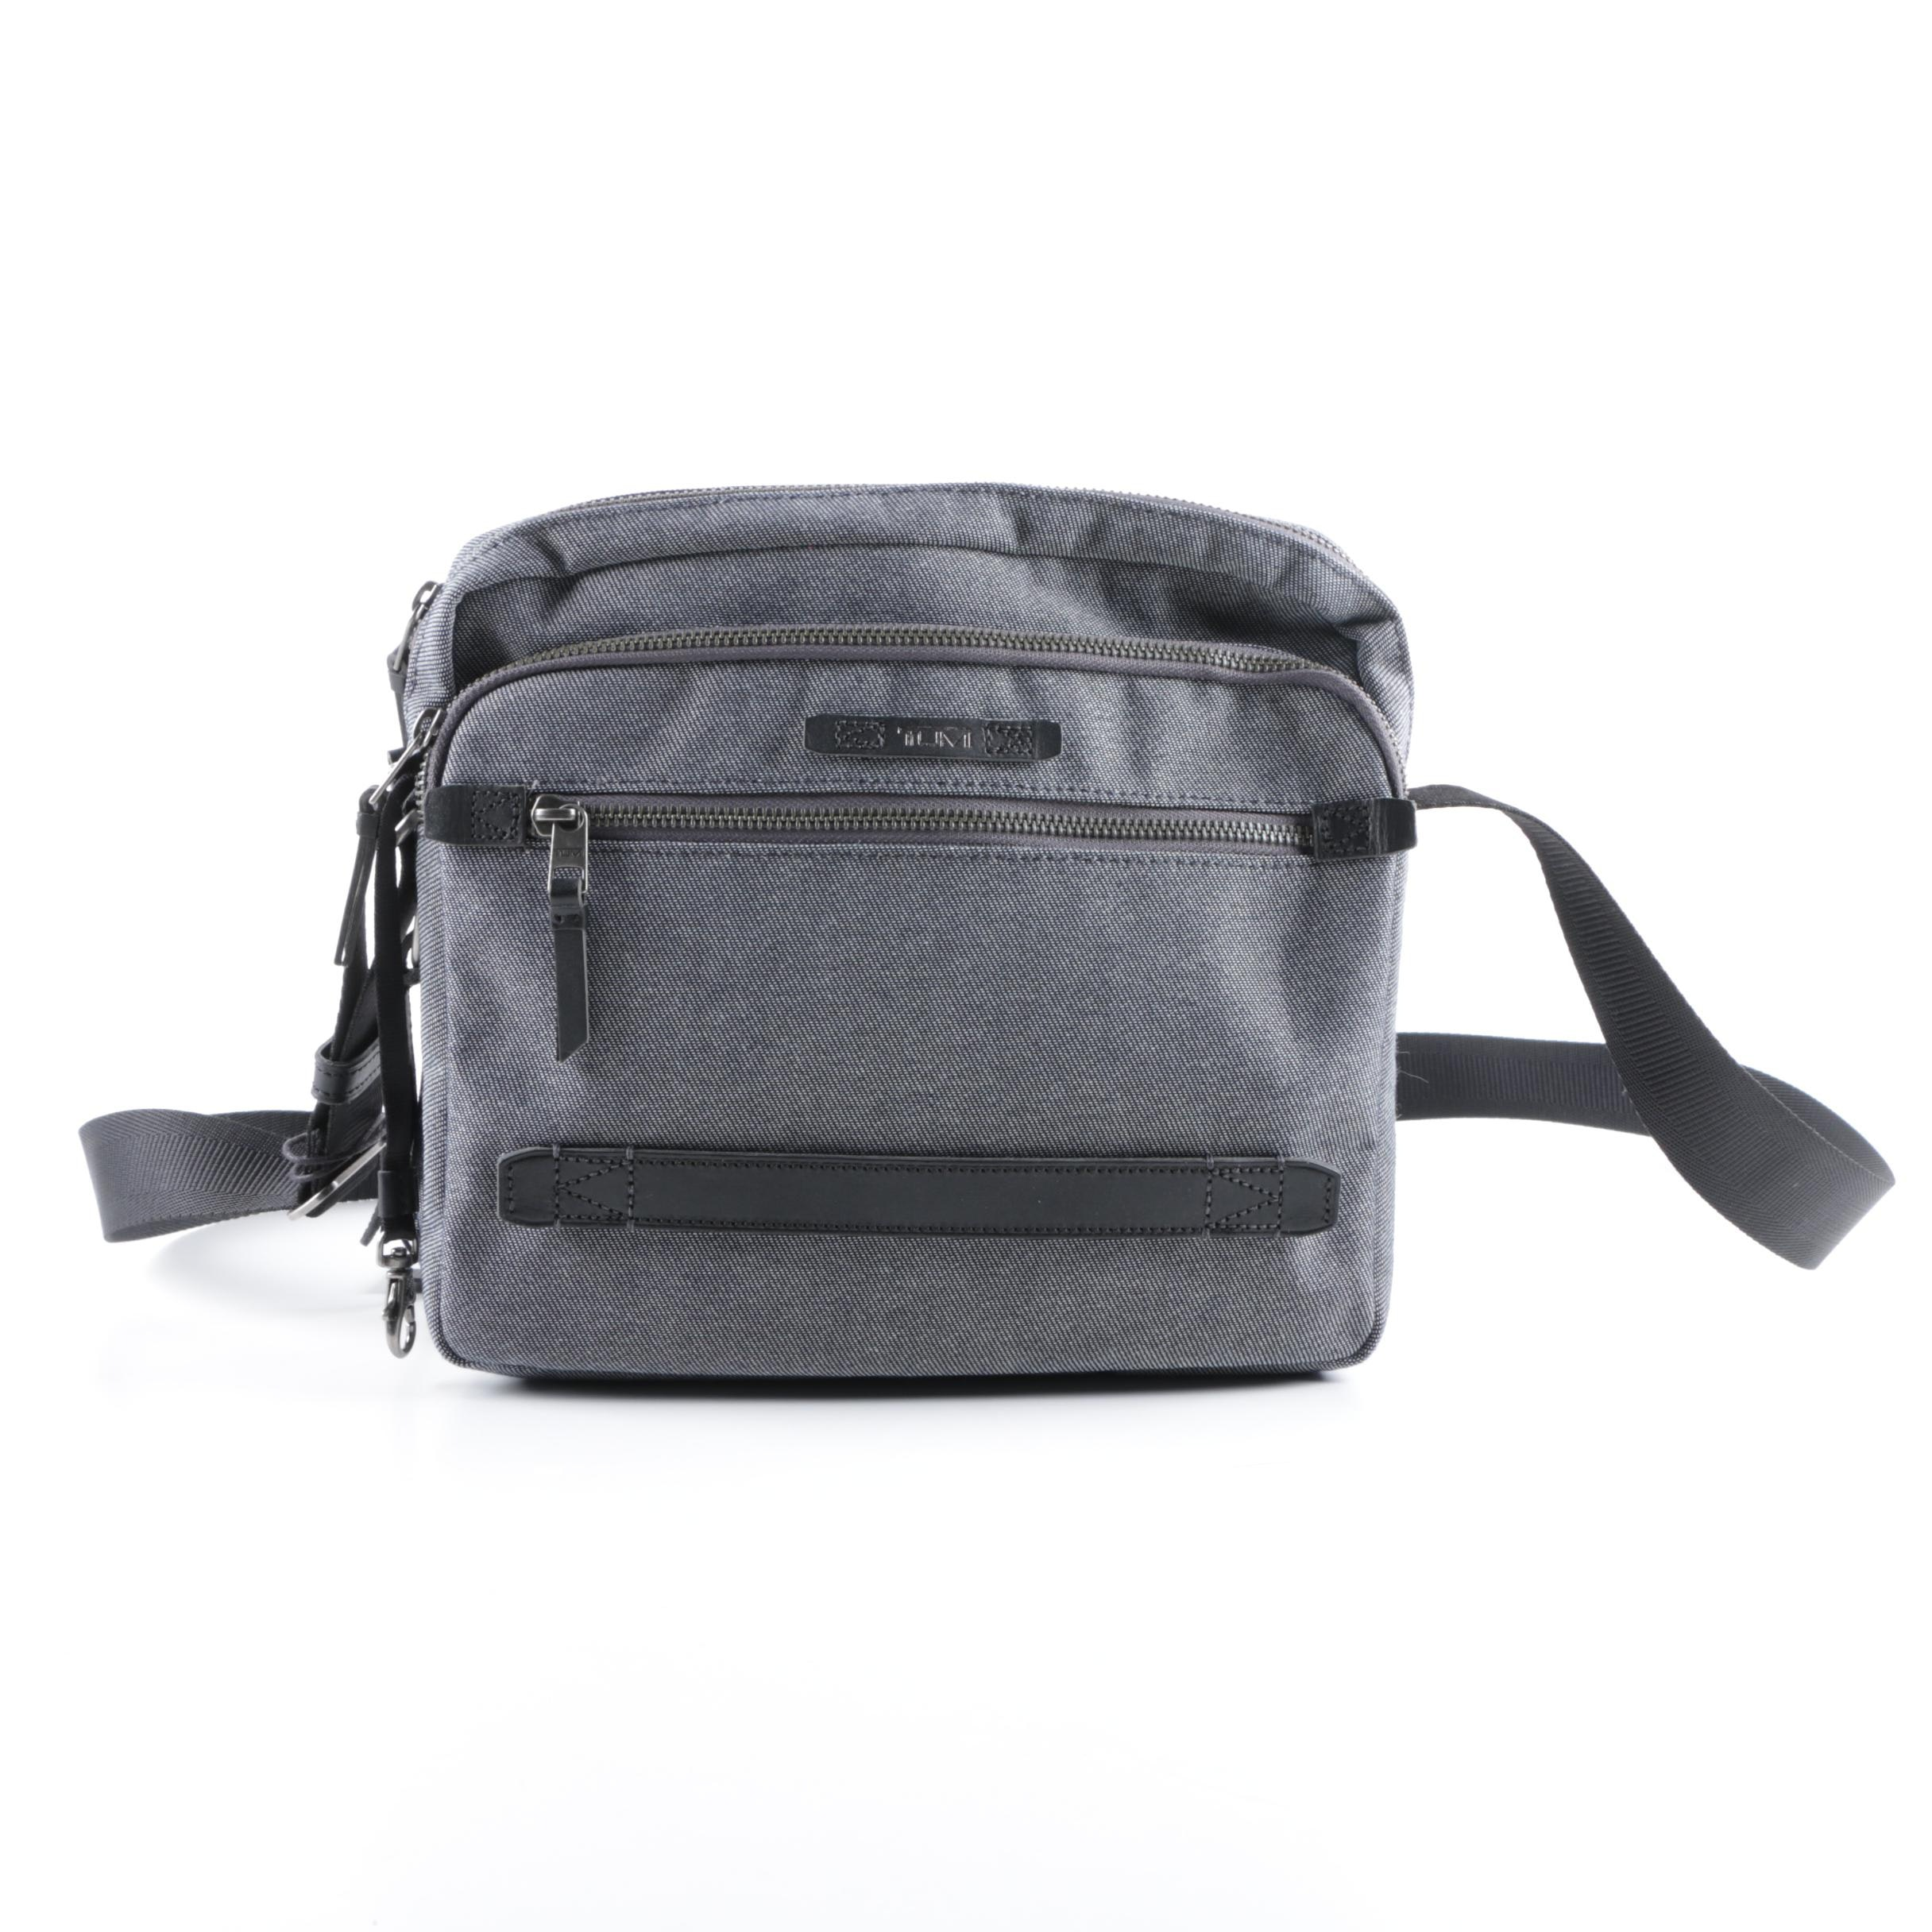 Tumi Grey Canvas Crossbody Bag